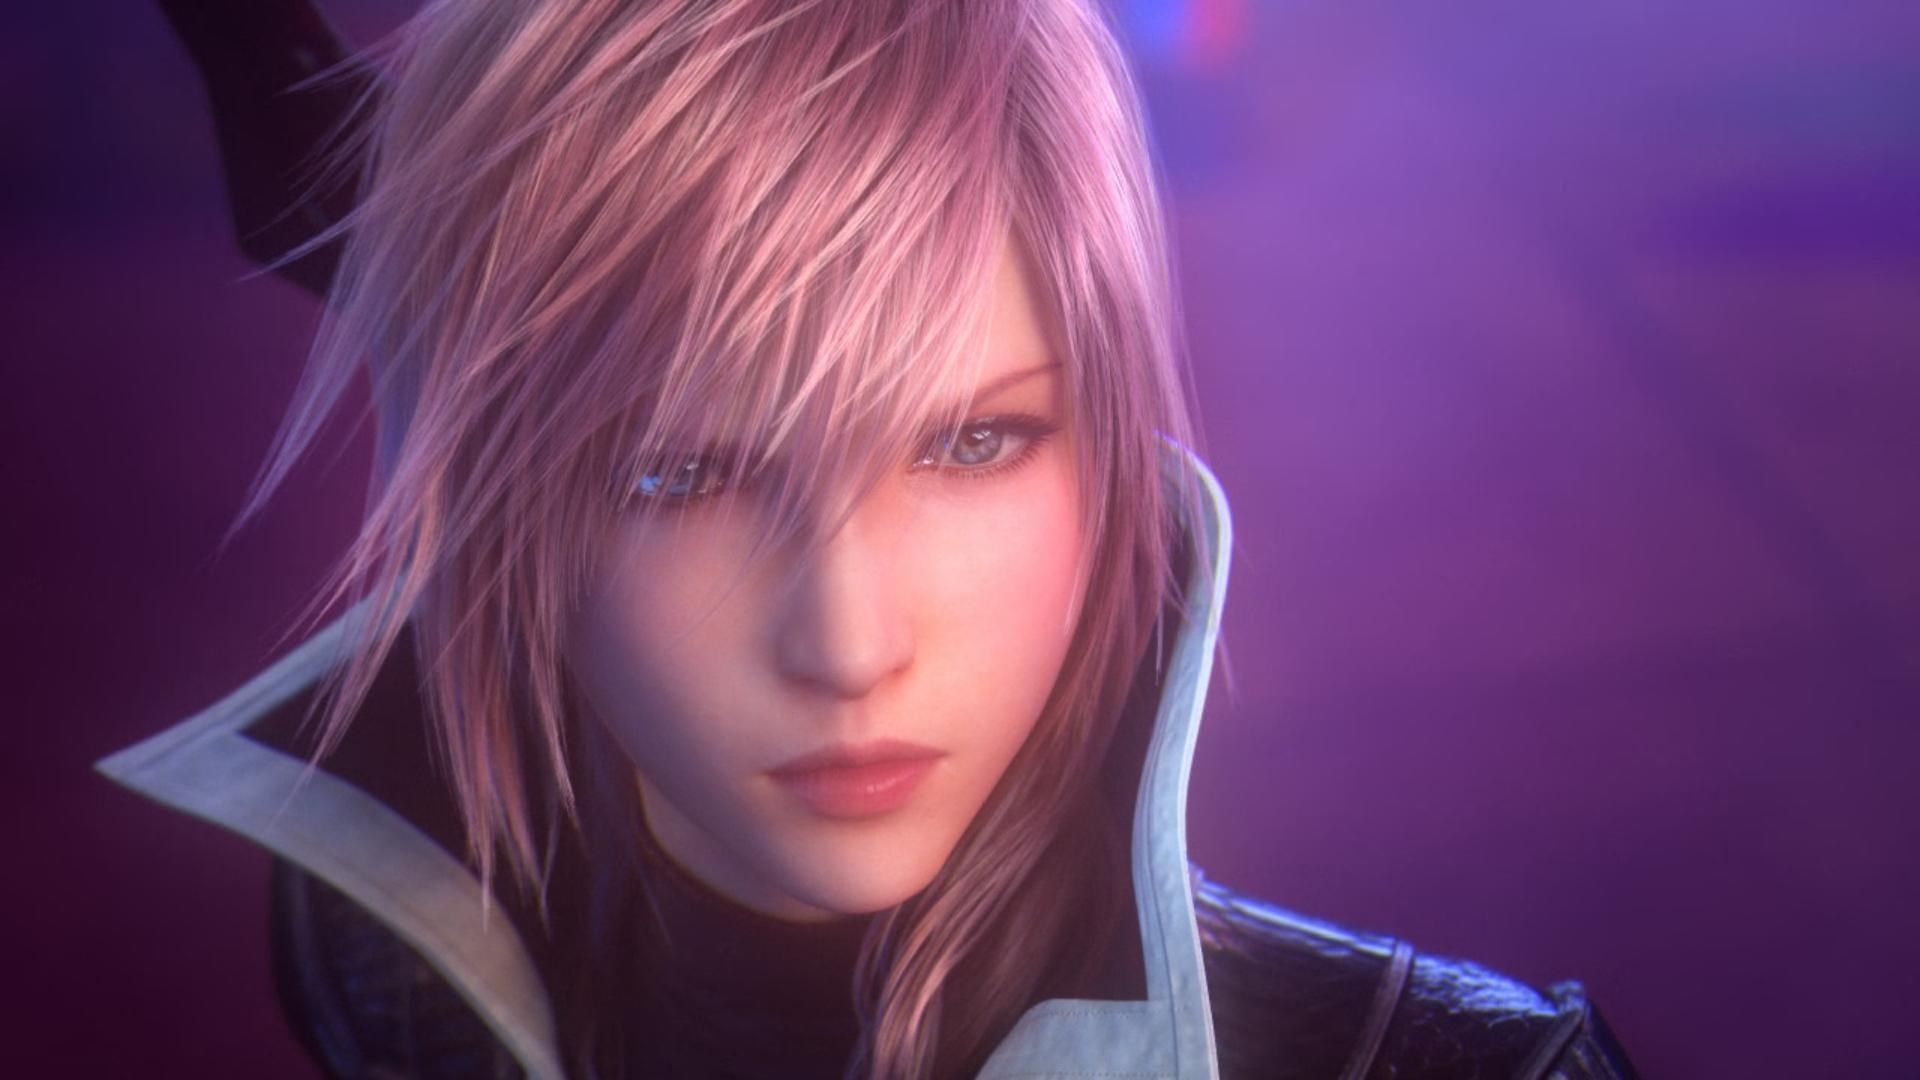 1920x1080 px images for desktop: lightning returns final fantasy